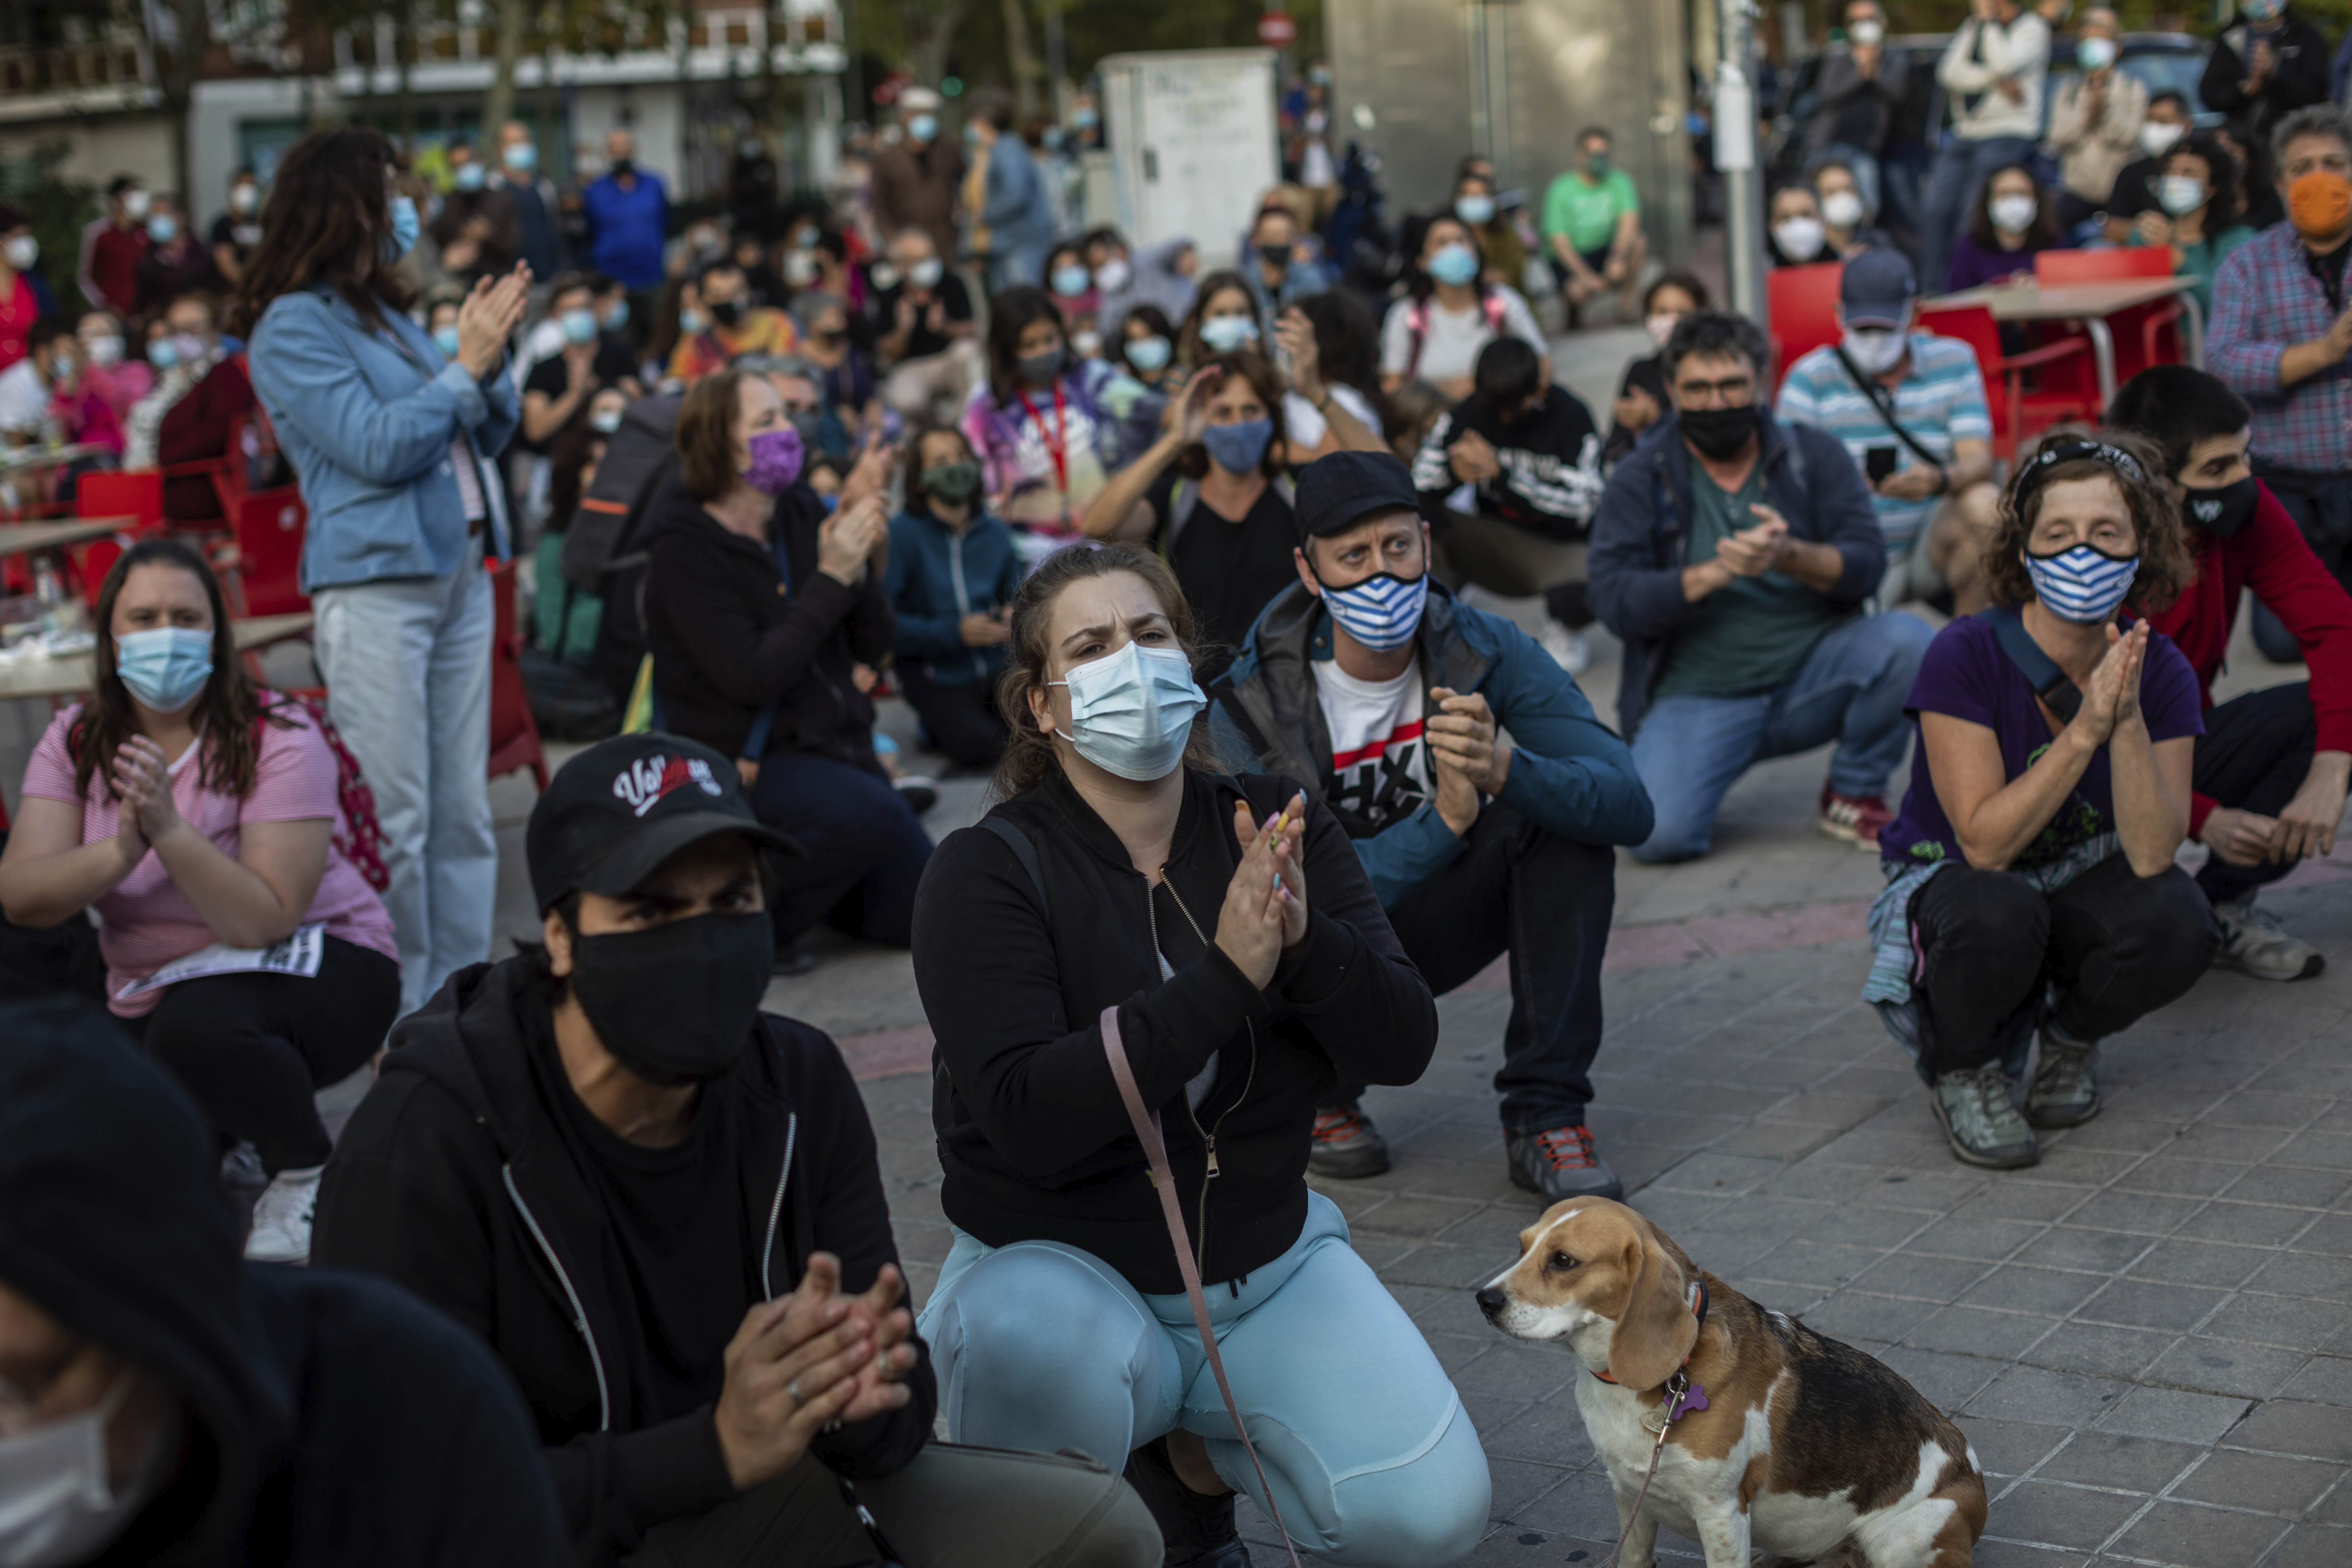 Residents of restricted mobility areas in Madrid due to the coronavirus outbreak gather during a protest to demand more resources for public health system and against social inequality in the southern neighbourhood of Vallecas, Madrid, Spain, Thursday, Sept. 24, 2020. The regional government is set to announce Friday new restrictions in Madrid, where gatherings are limited to a maximum of 6 people and more than 850,000 residents have been partially locked down this week. (AP Photo/Bernat Armangue)